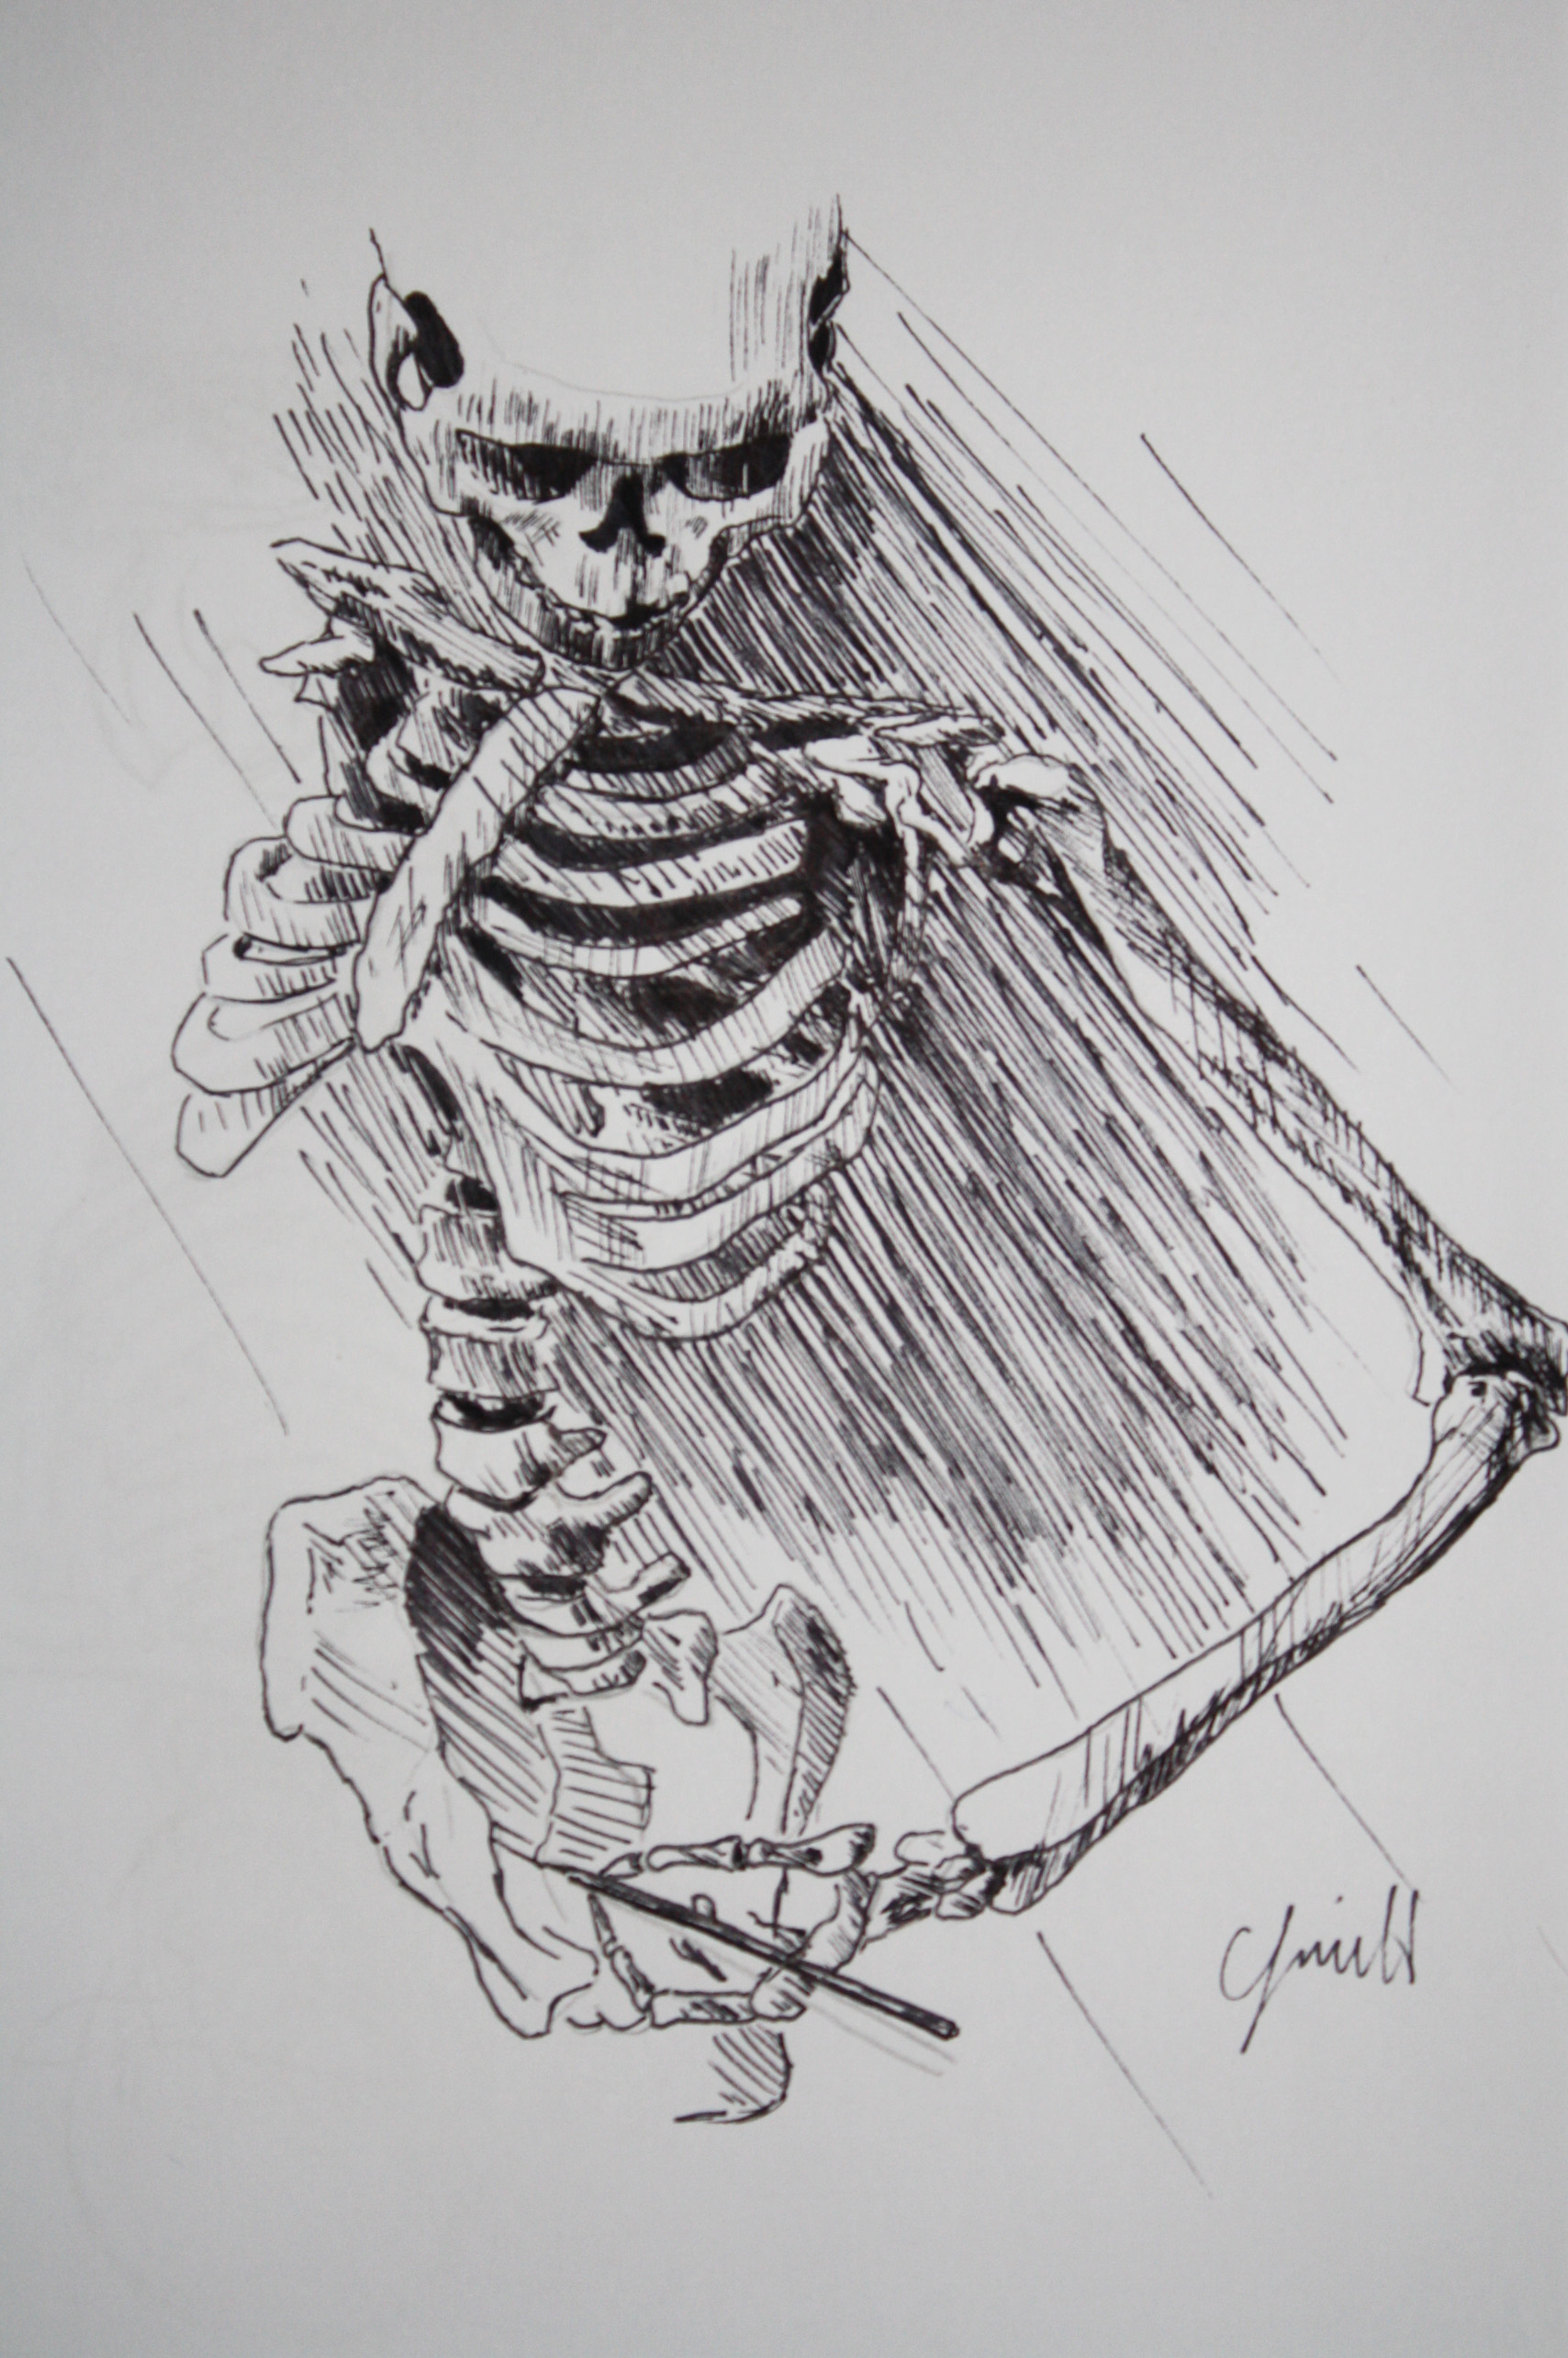 It's just a Skeleton